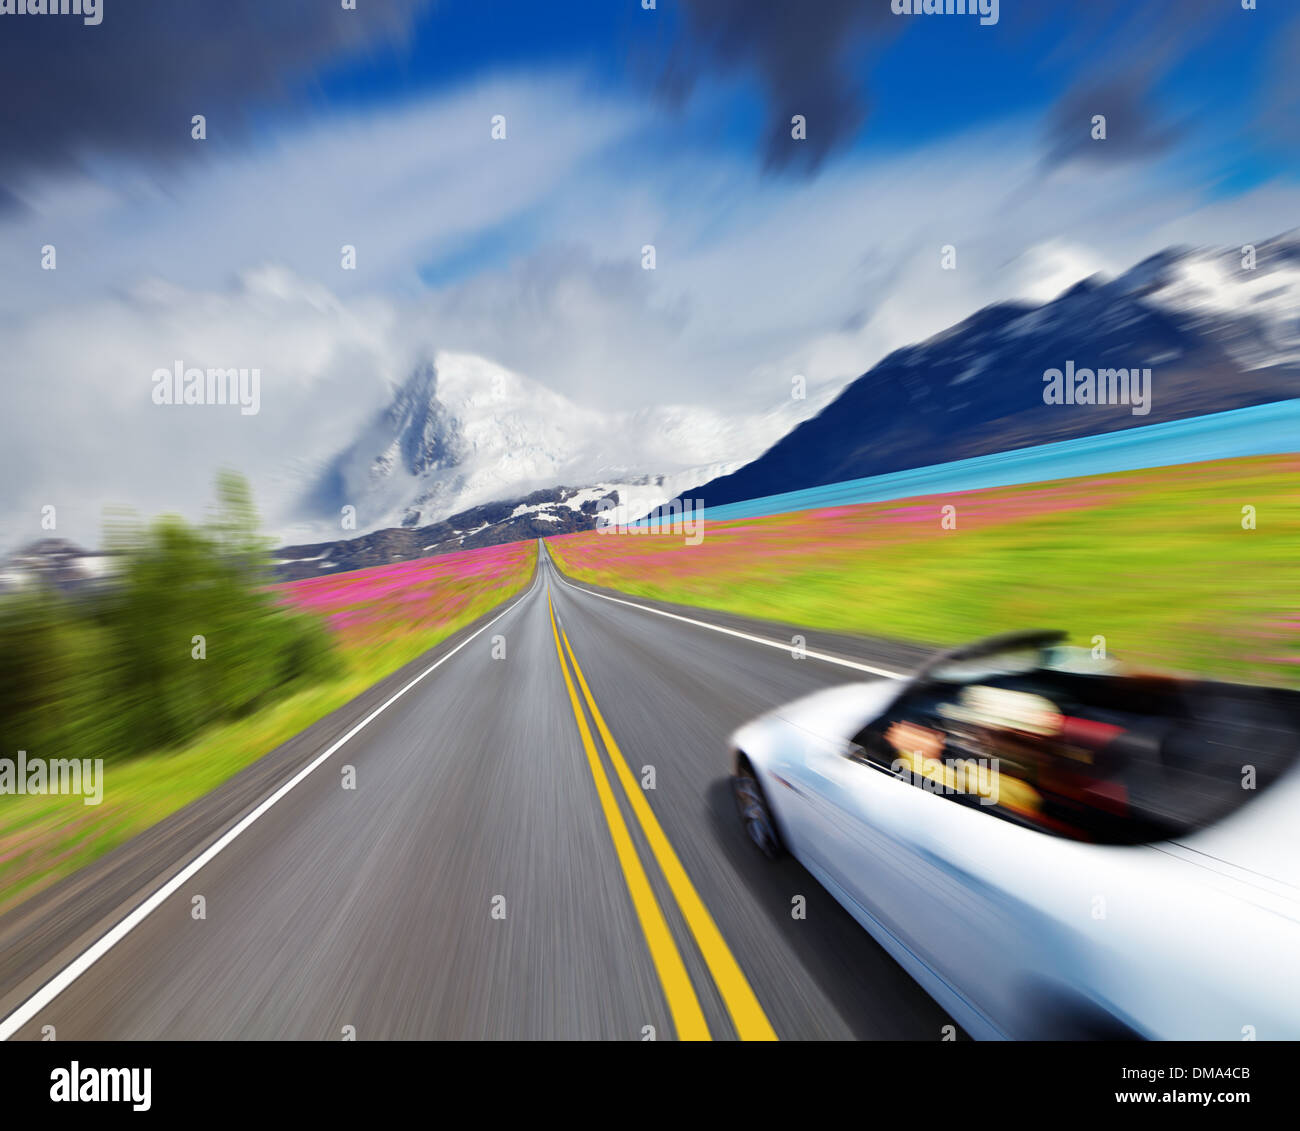 Mountain landscape with road and sports car in motion blur - Stock Image